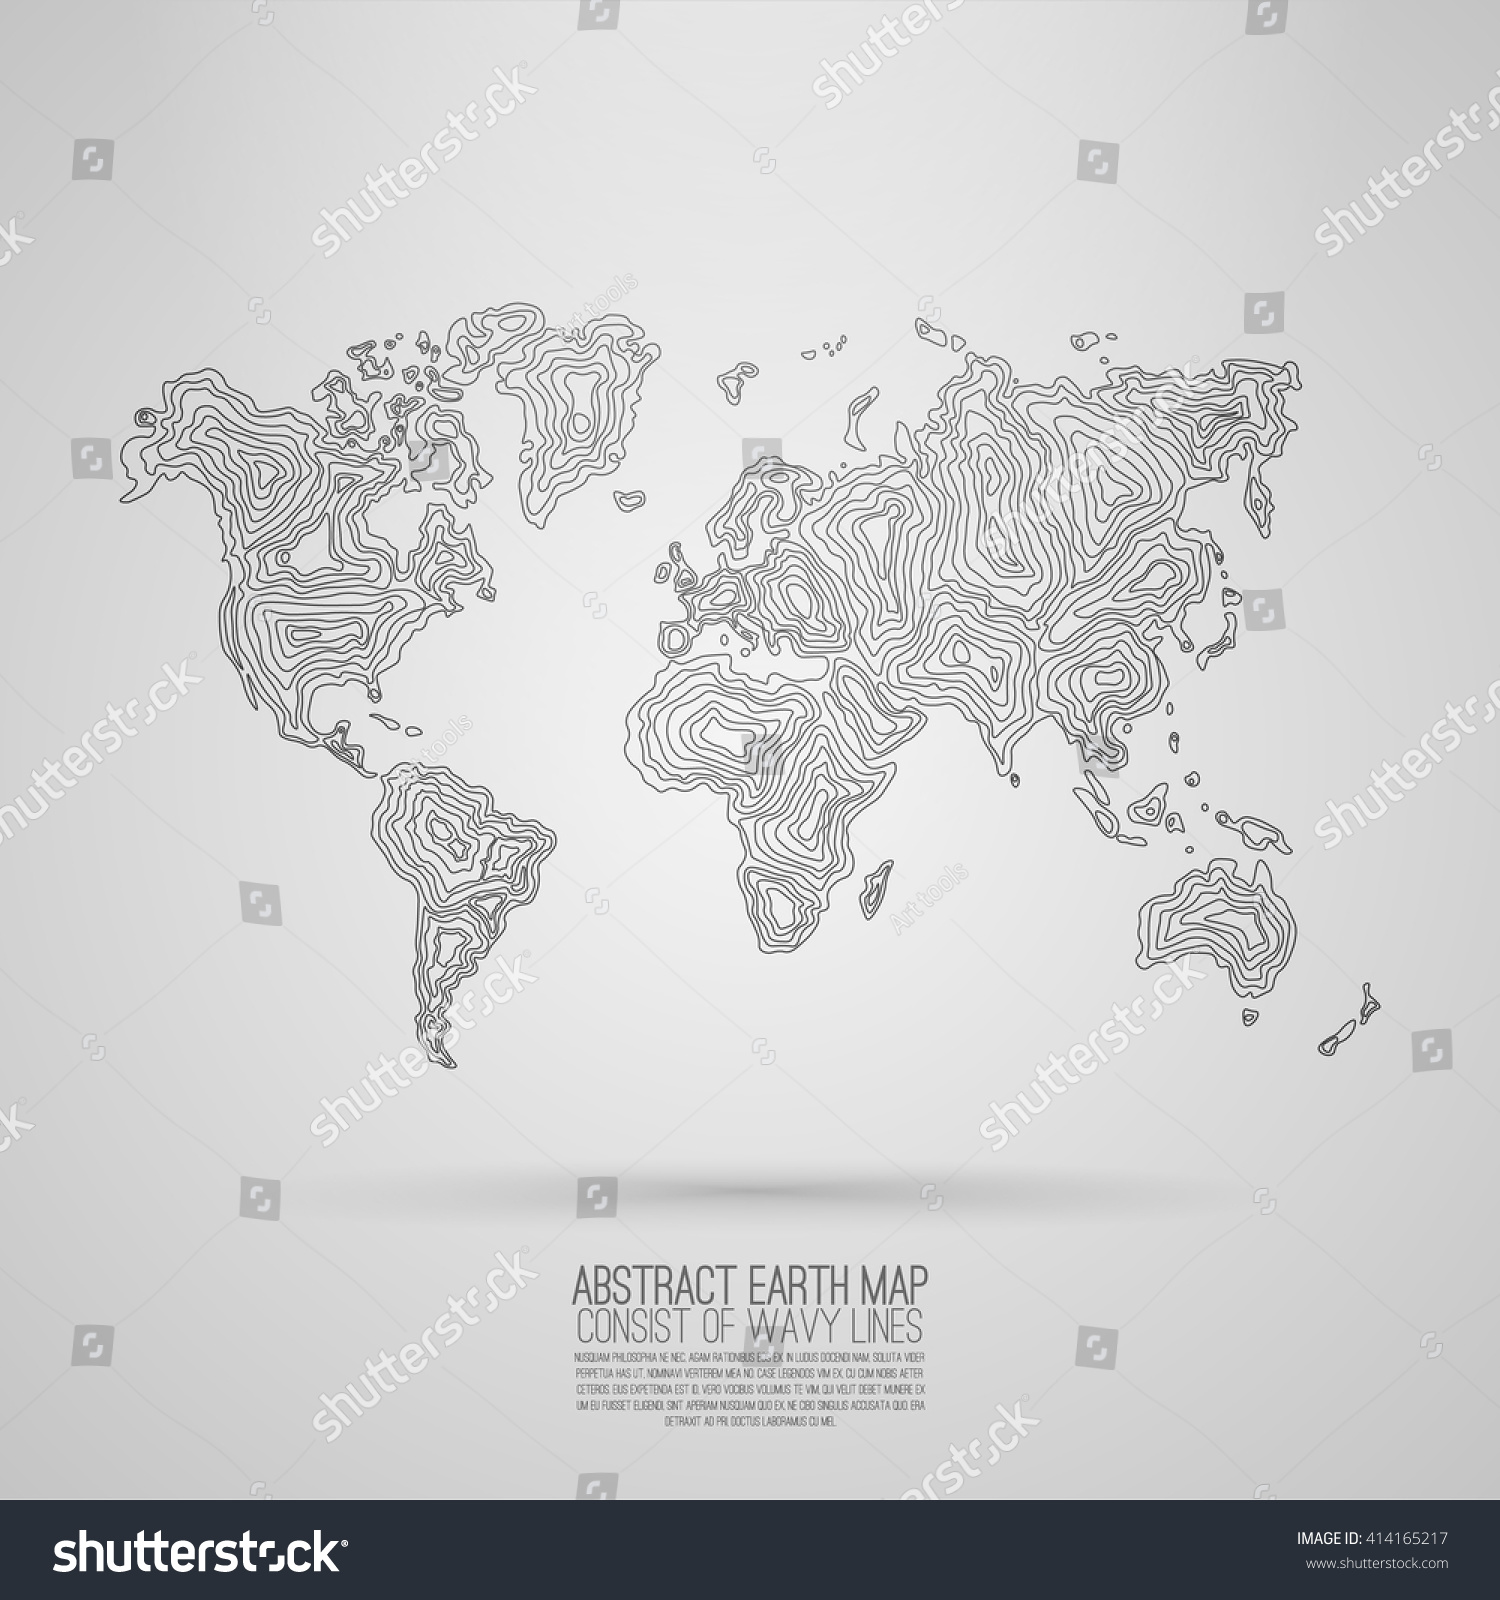 Abstract world map consist wavy lines stock vector 2018 414165217 abstract world map consist of wavy lines vector earth map decorative continents gumiabroncs Gallery